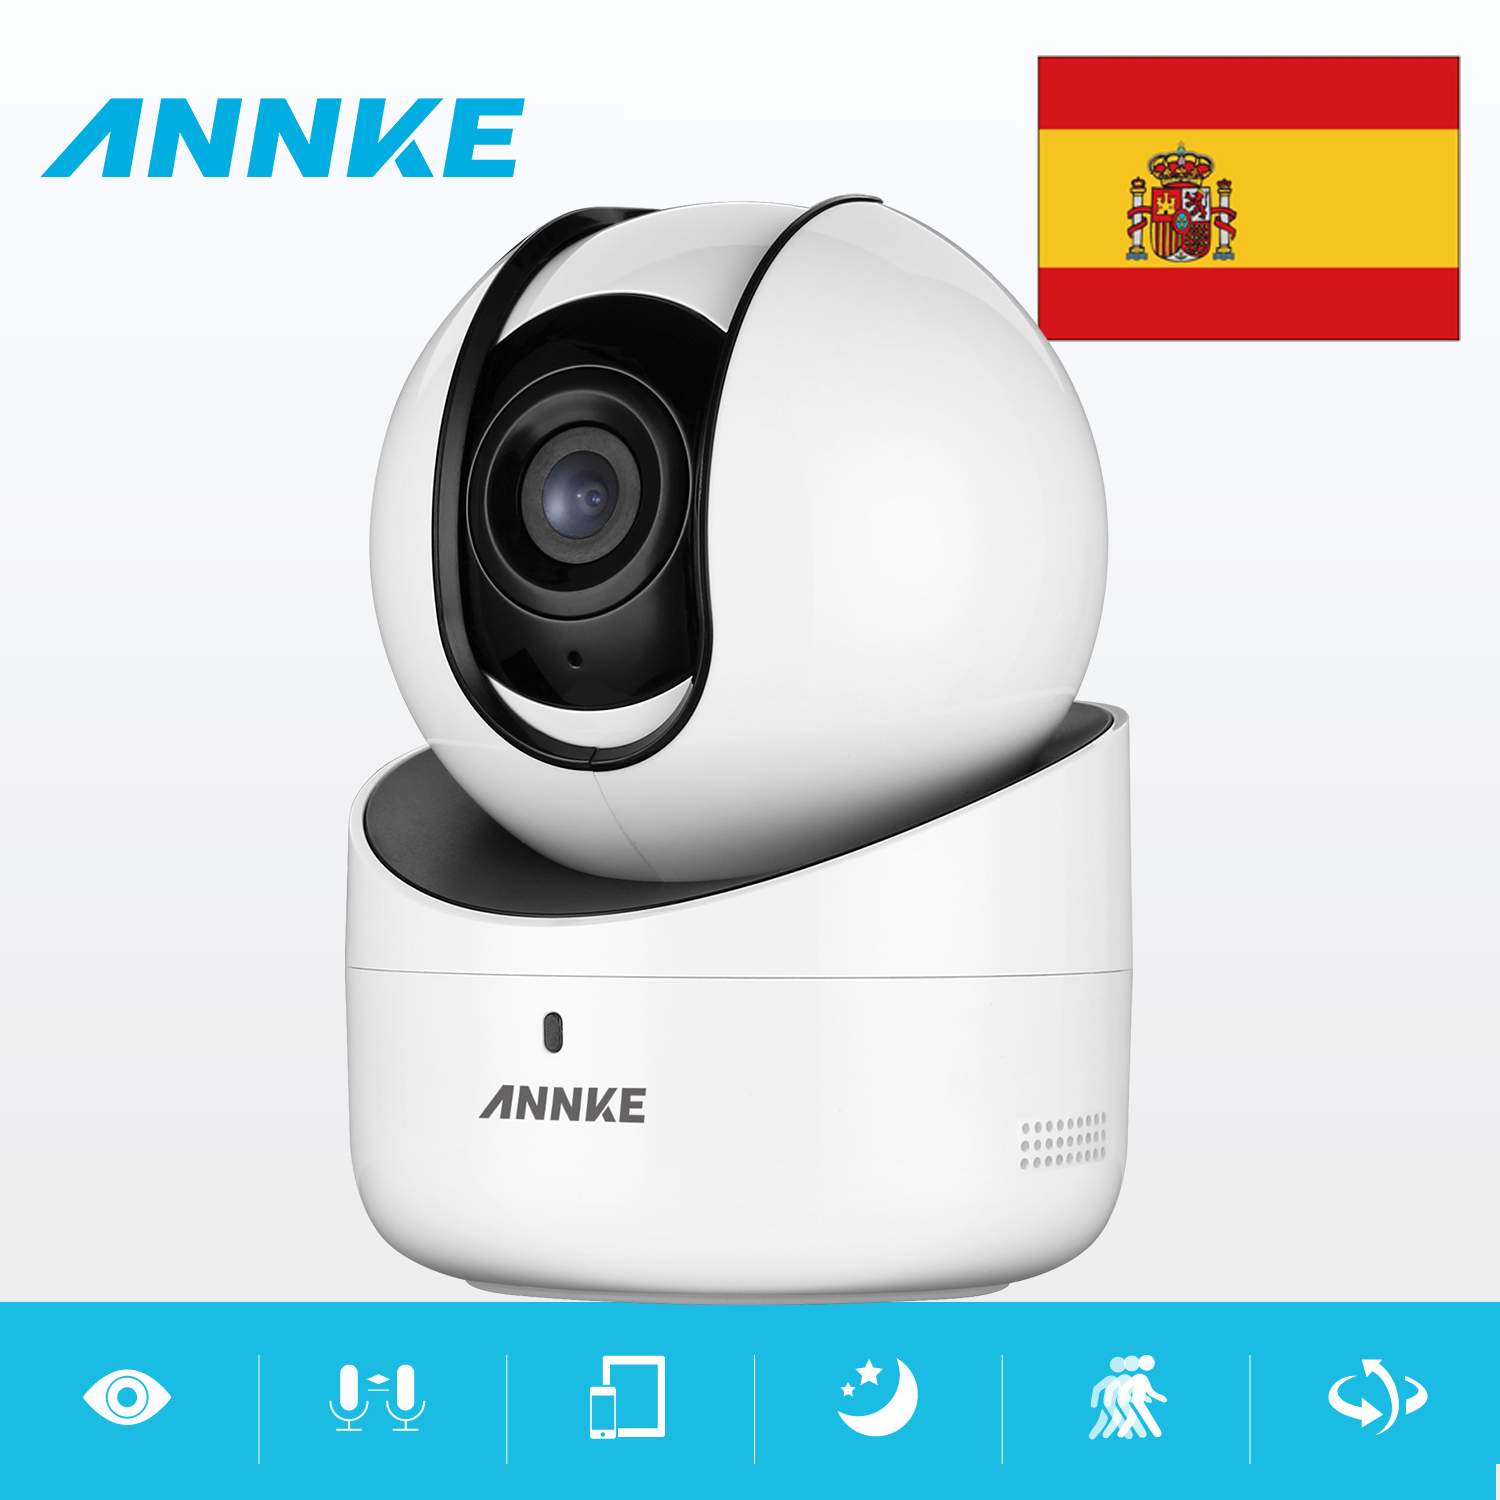 Clearance Sale For Spain : ANNKE 720P WiFi IP Camera Network Security IR CUT Motion Detecte Intelligent Alert WDR ROI 3D DNR annke 4pcs hd 4mp ip network poe outdoor ir cut 3d dnr cctv home security camera system